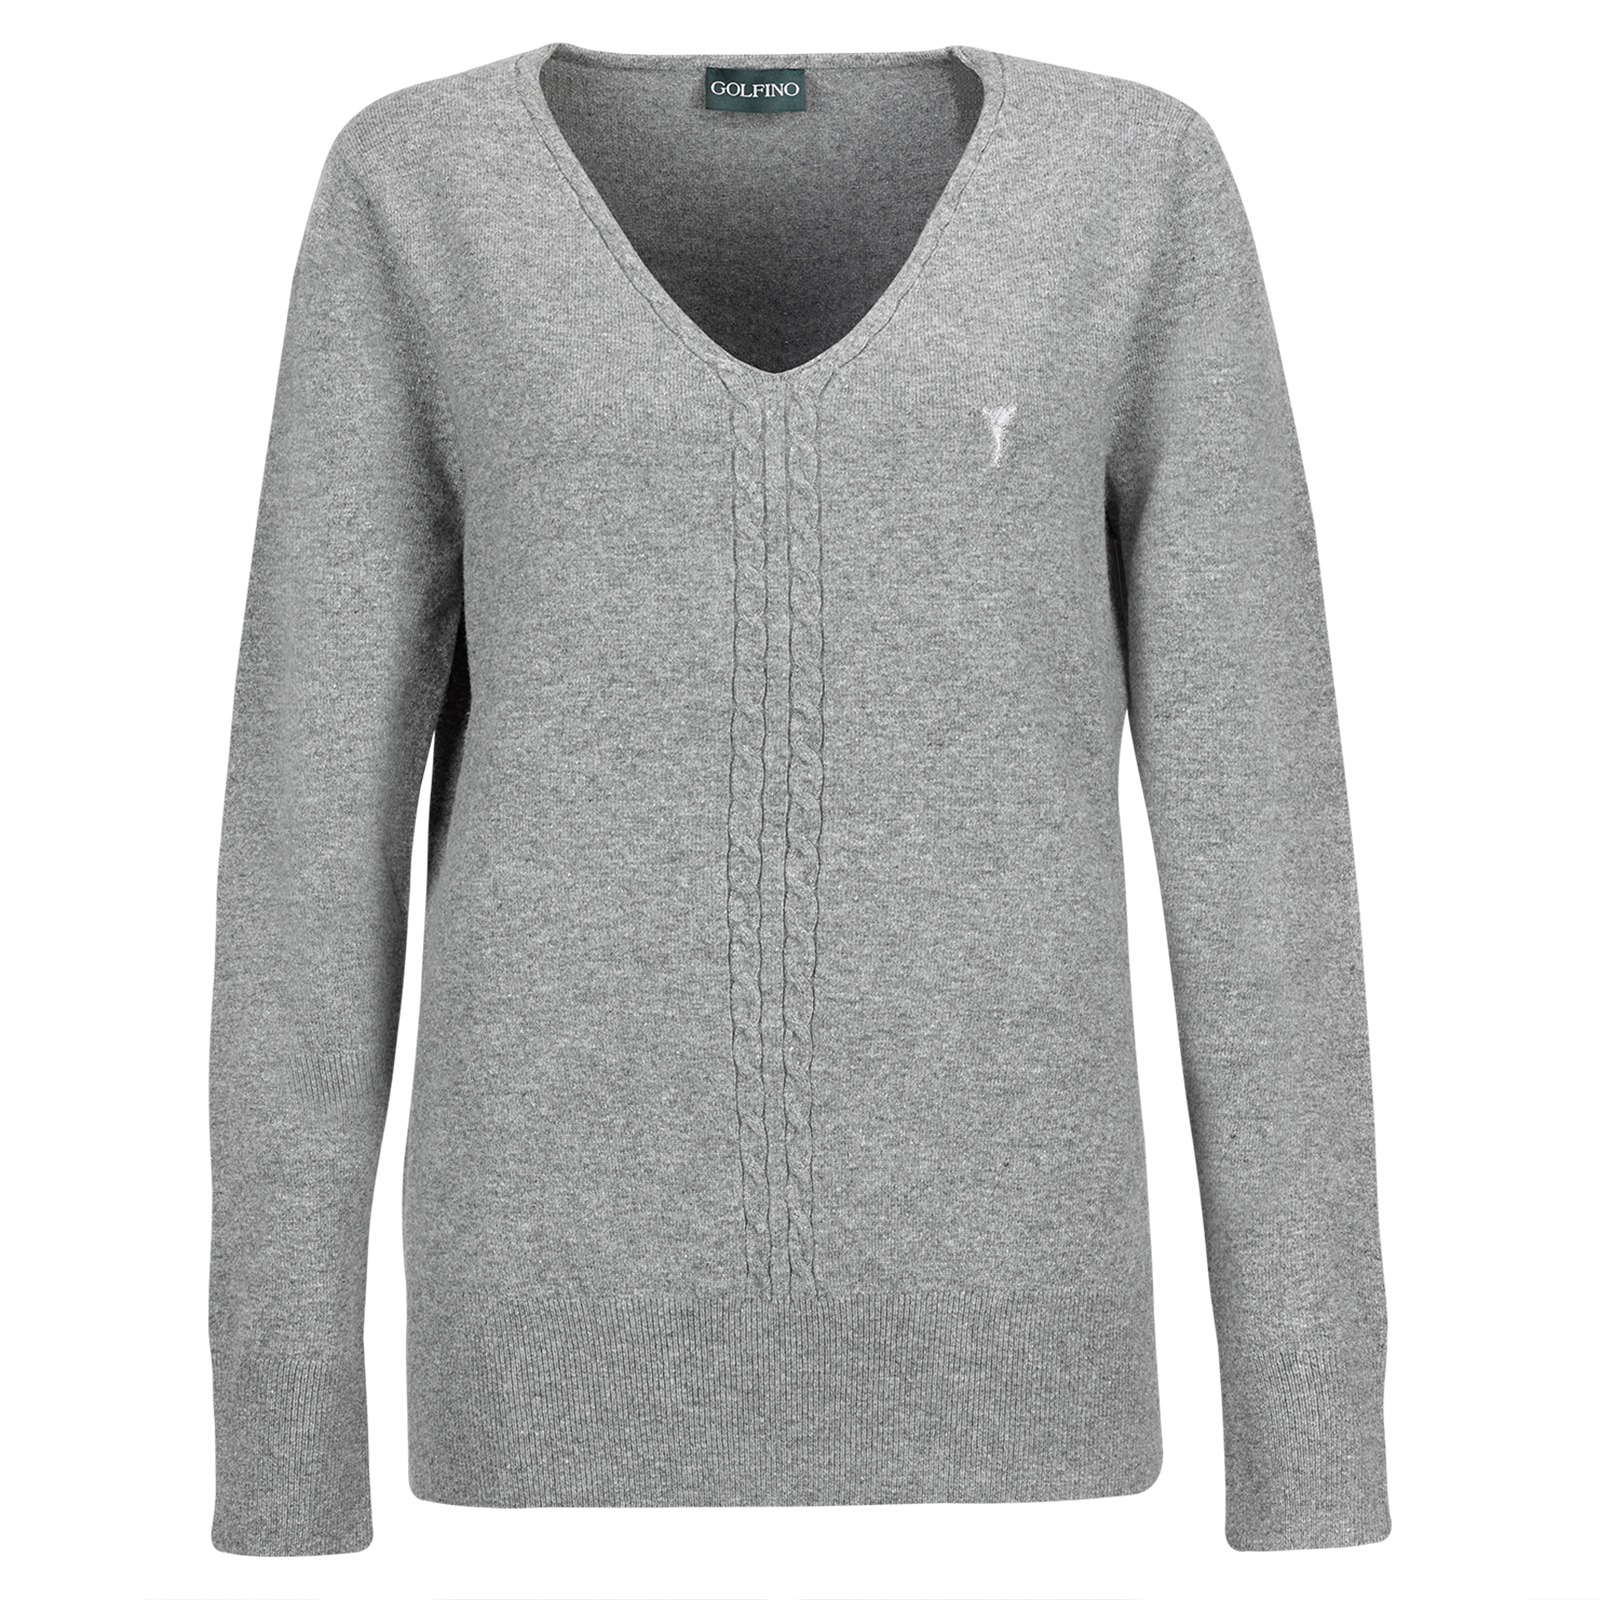 Ladies' cable-knit v-neck pullover